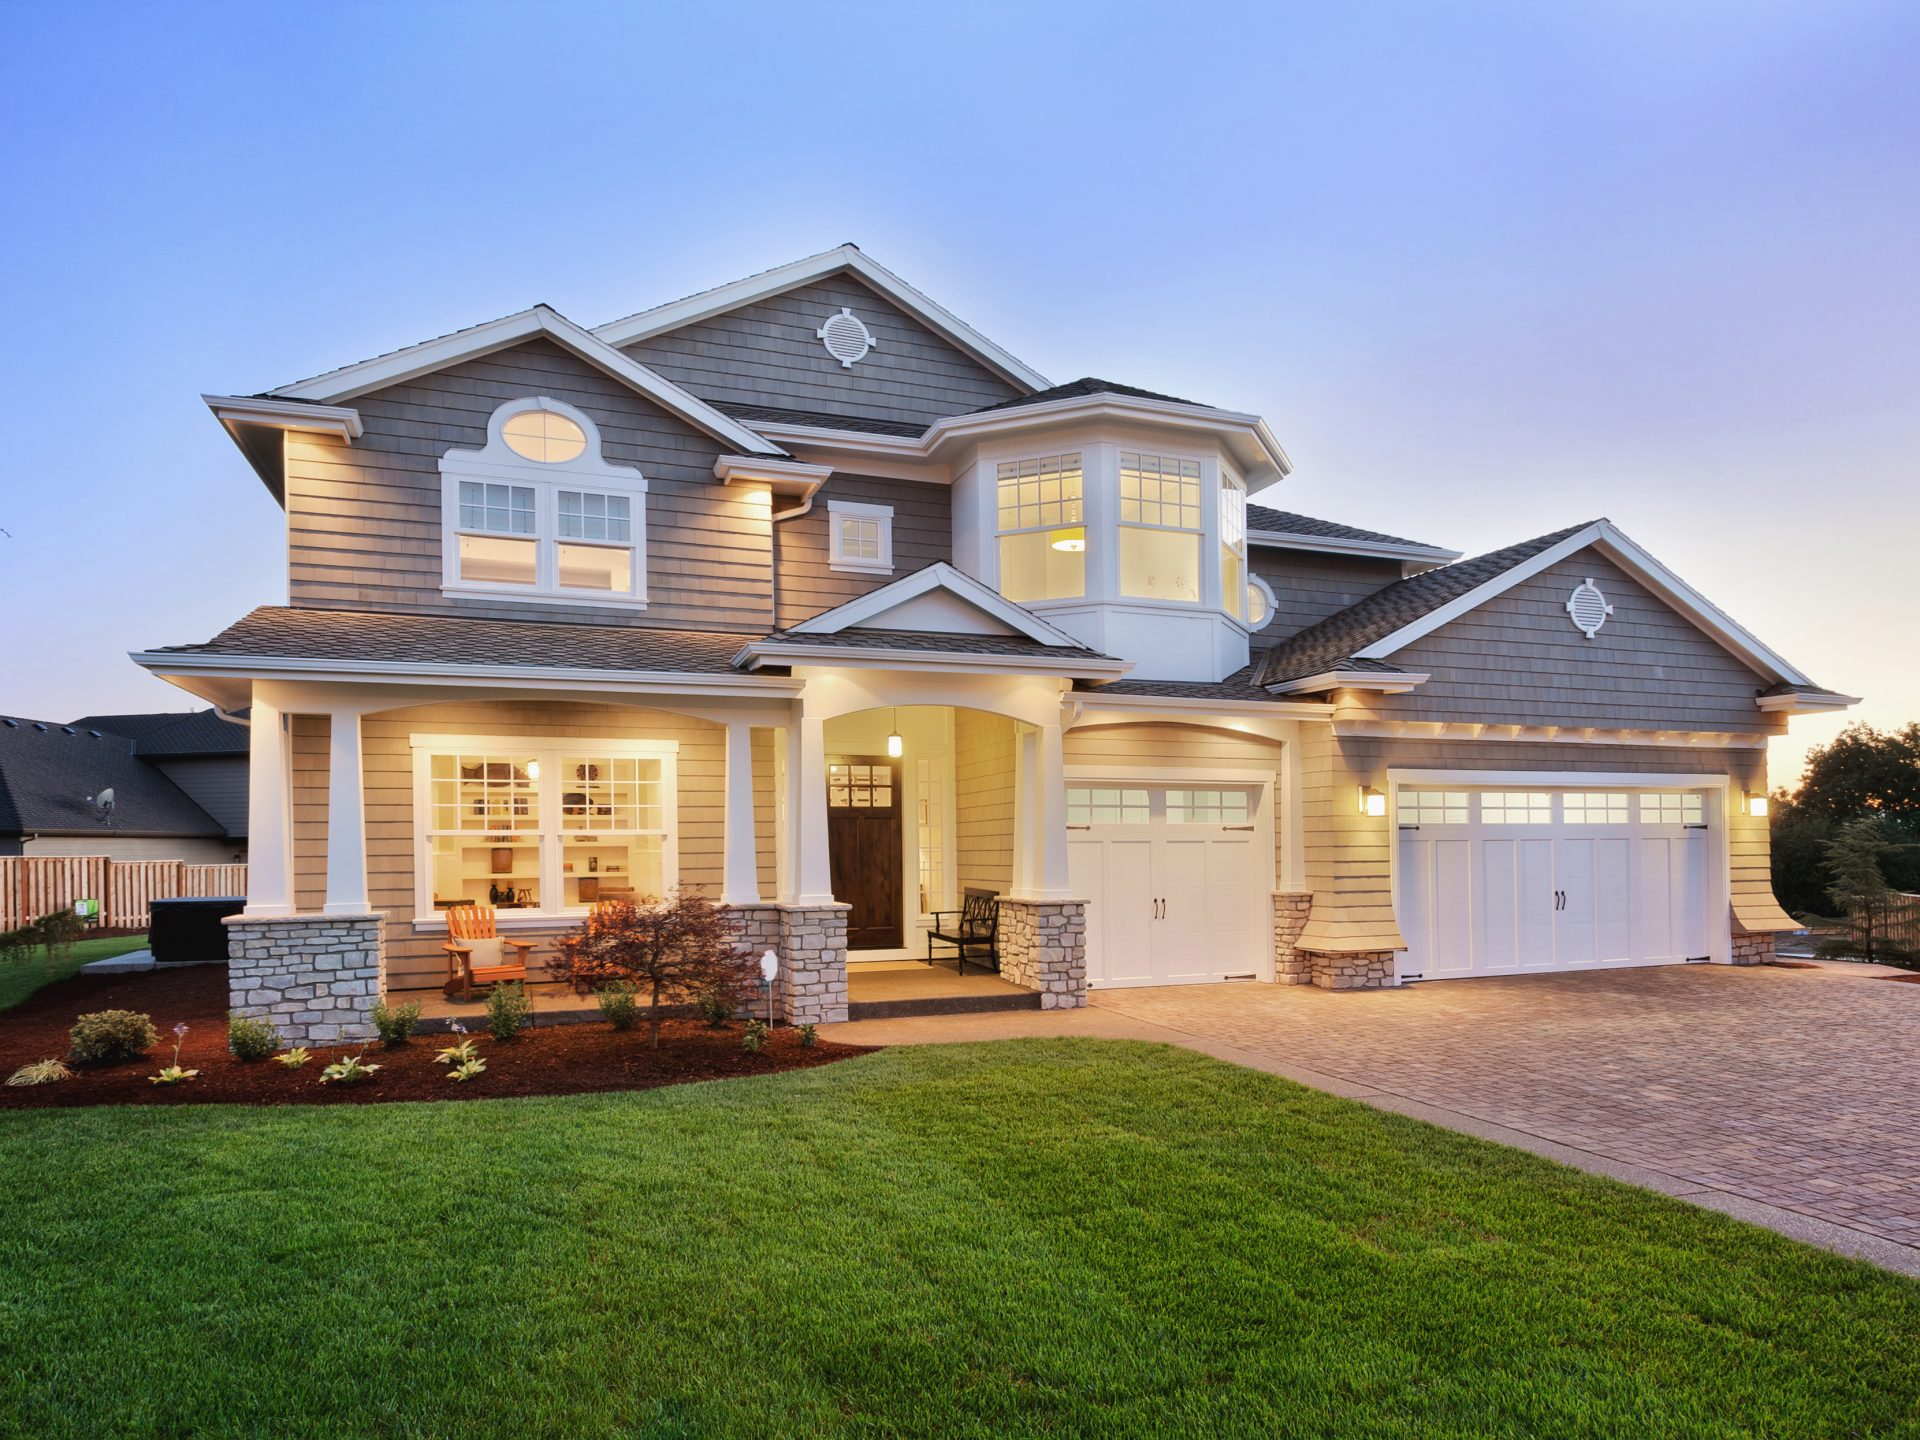 Luxury Home Exterior with Vaughn Real Estate Group